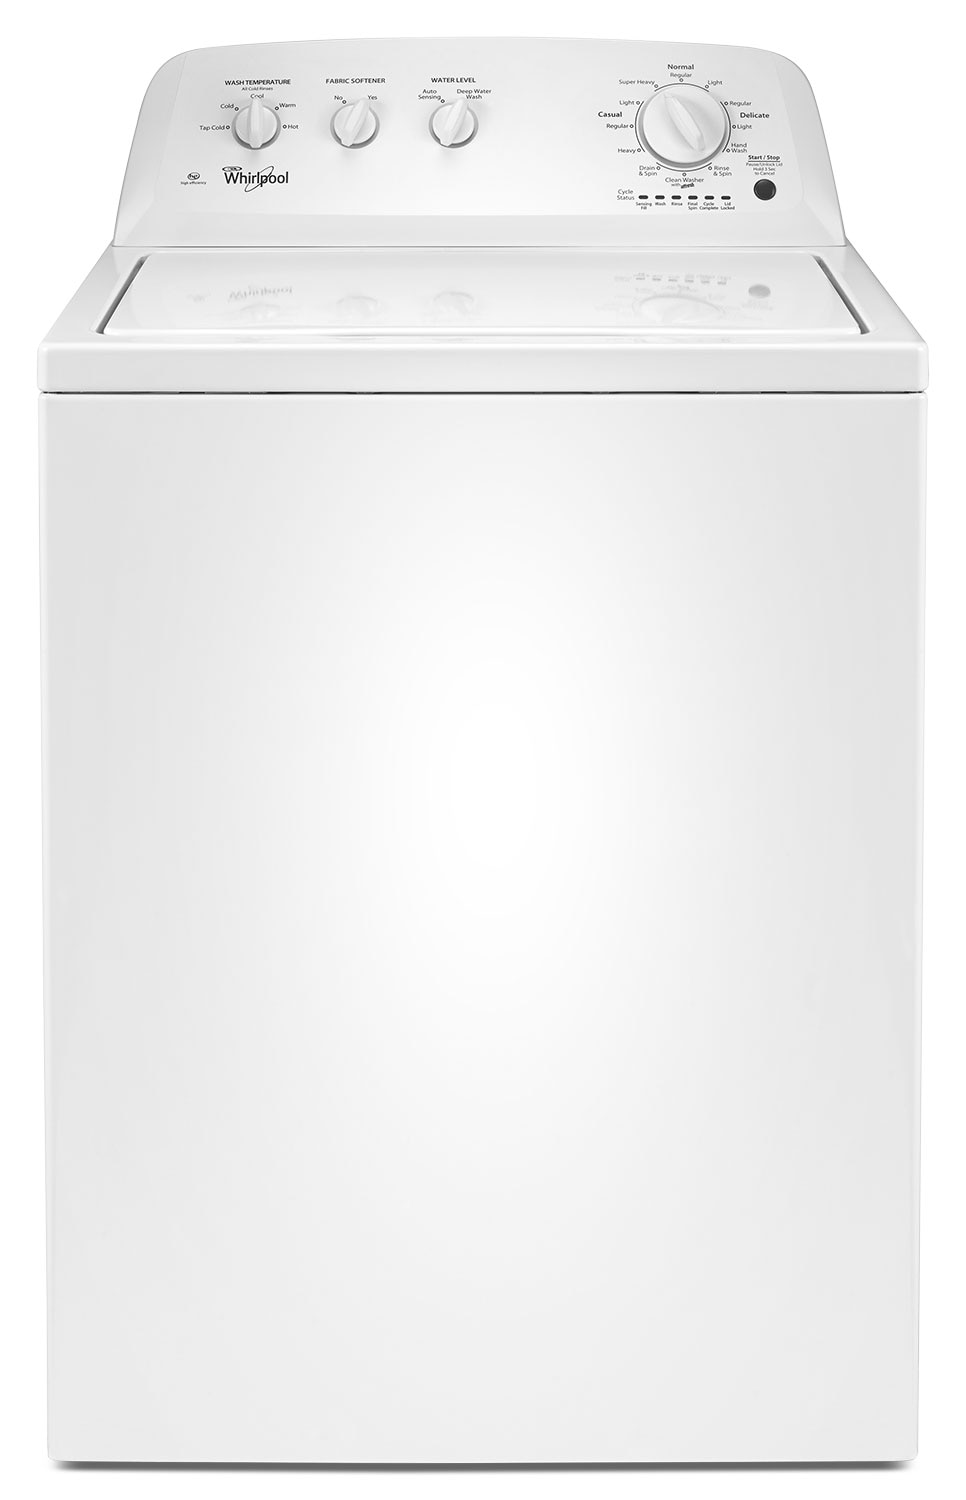 Whirlpool 4.0 Cu. Ft. Top-Load Washer – WTW4616FW